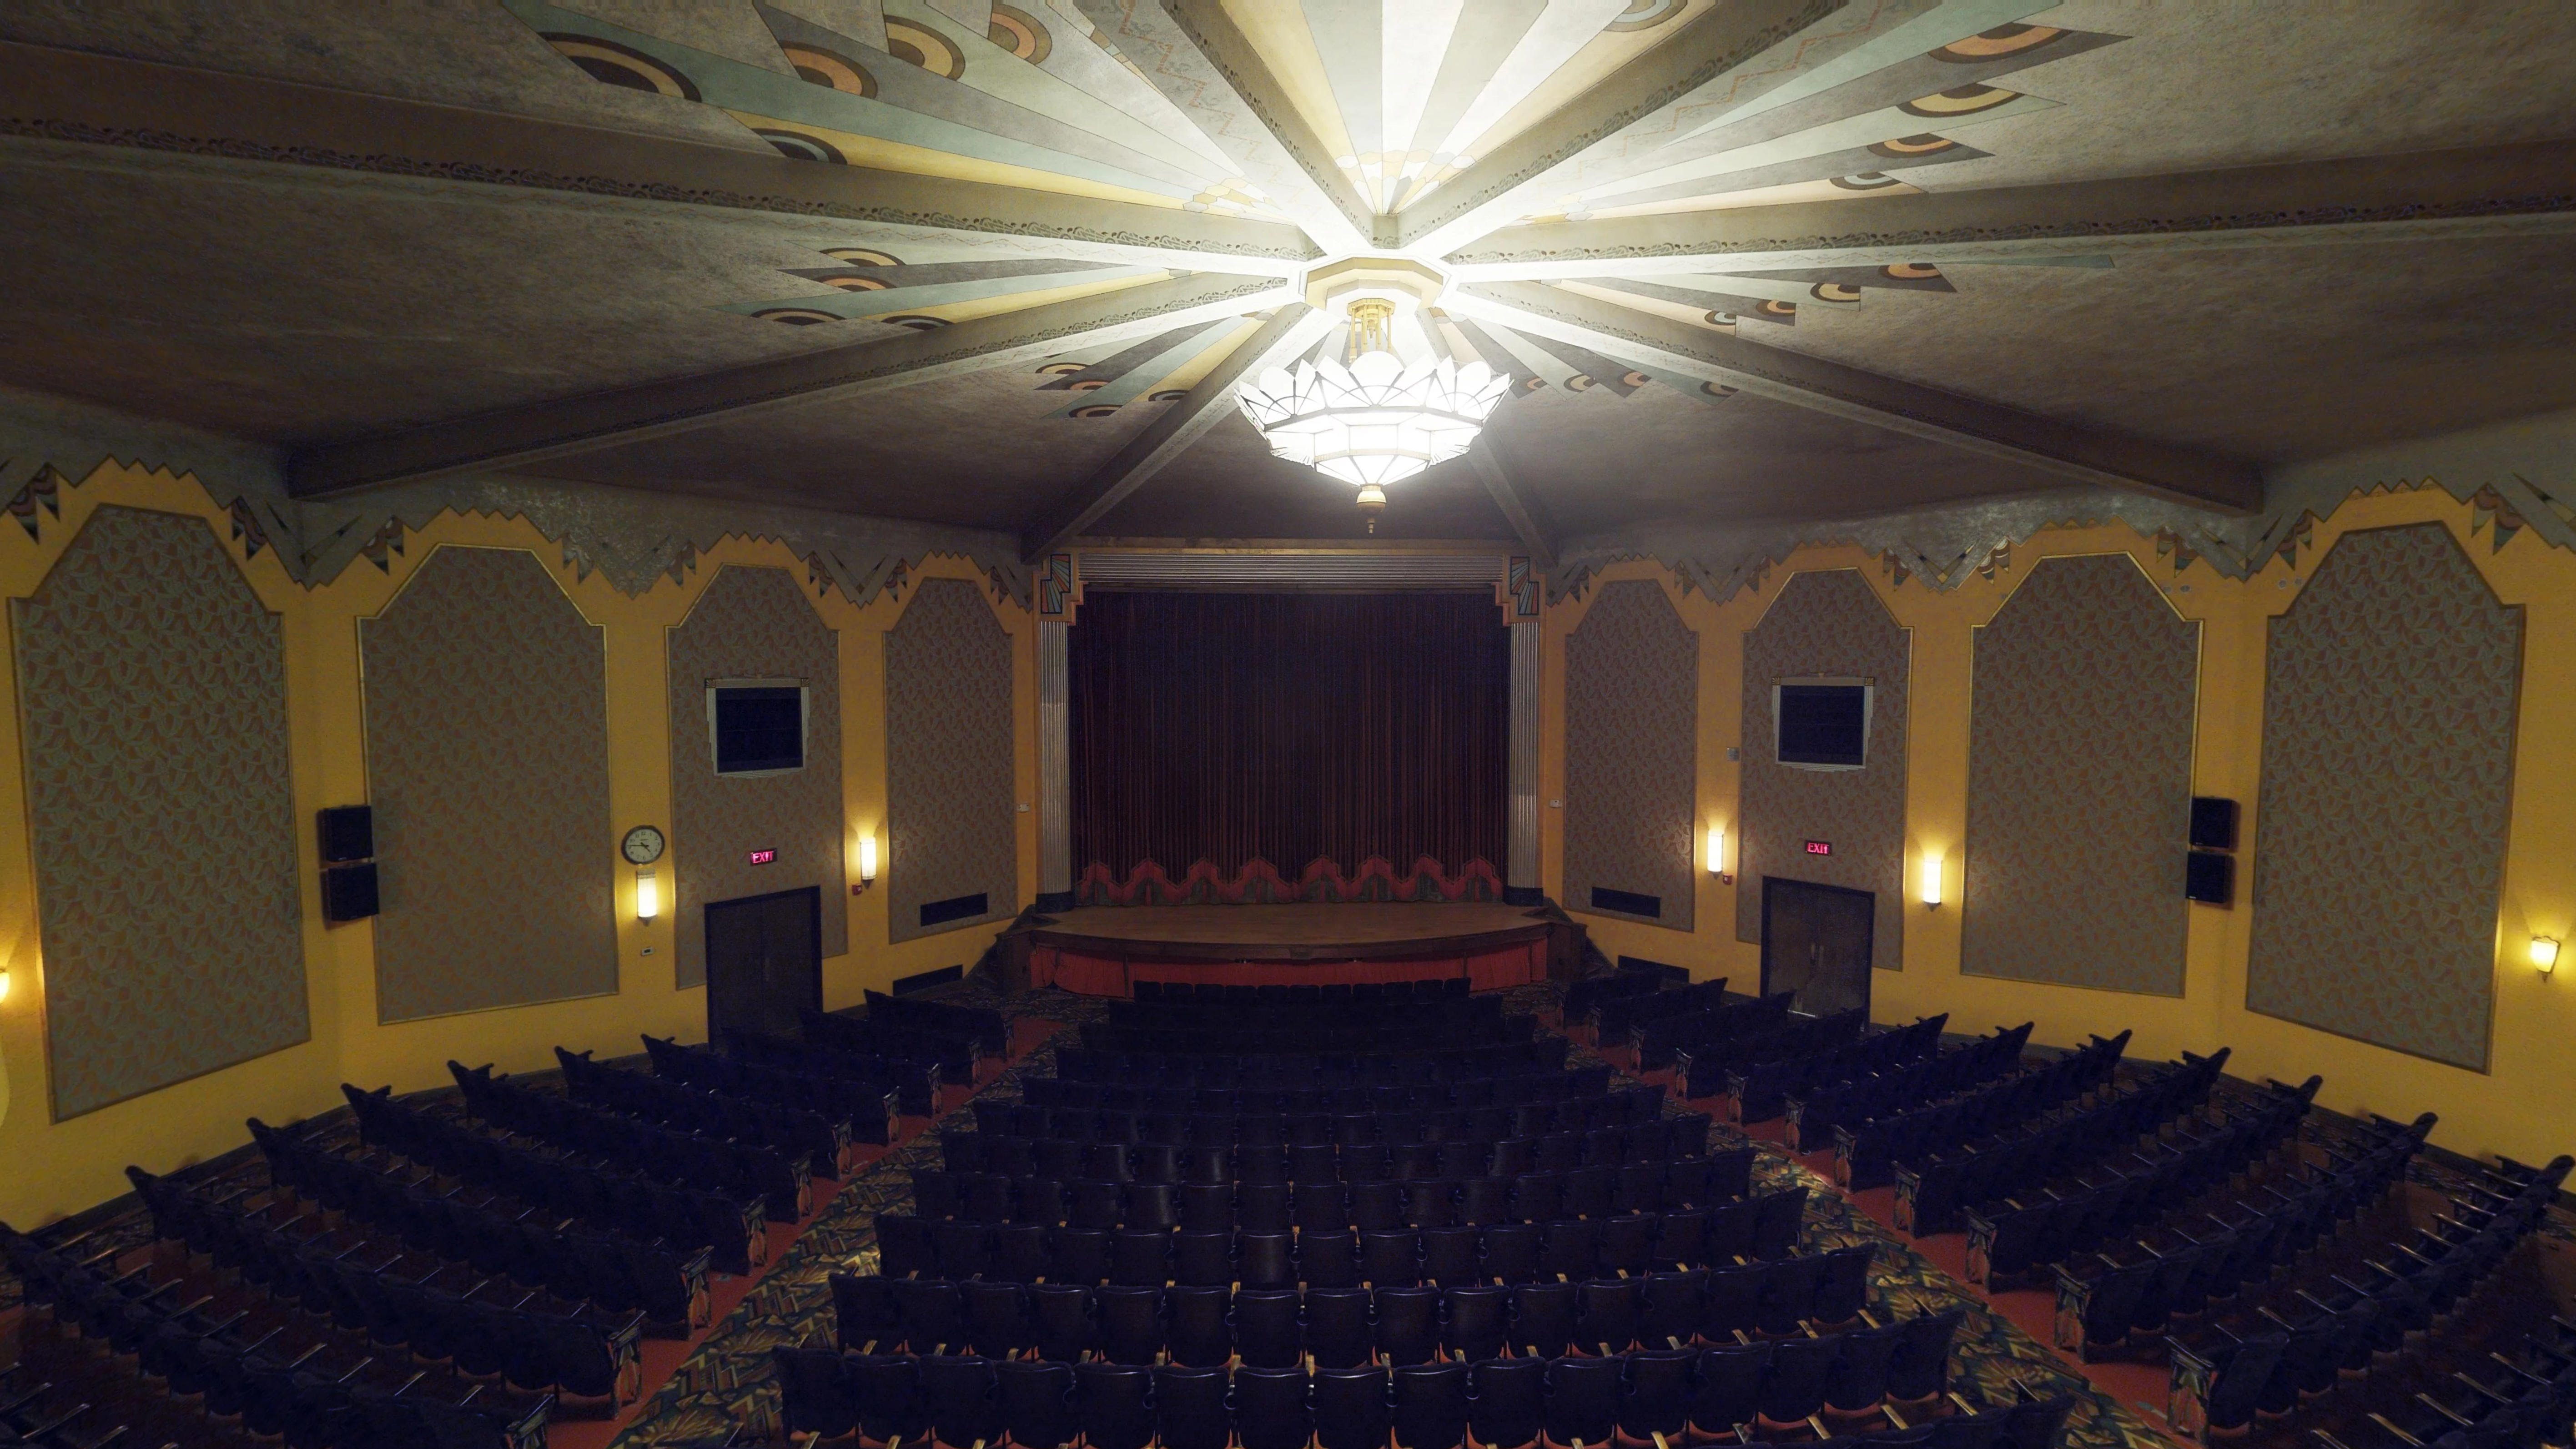 https://sites.google.com/a/virtualtoursdowneast.com/virtual_tours/museums/theater-seat-views/seat%20view%20balcony%20center.jpg